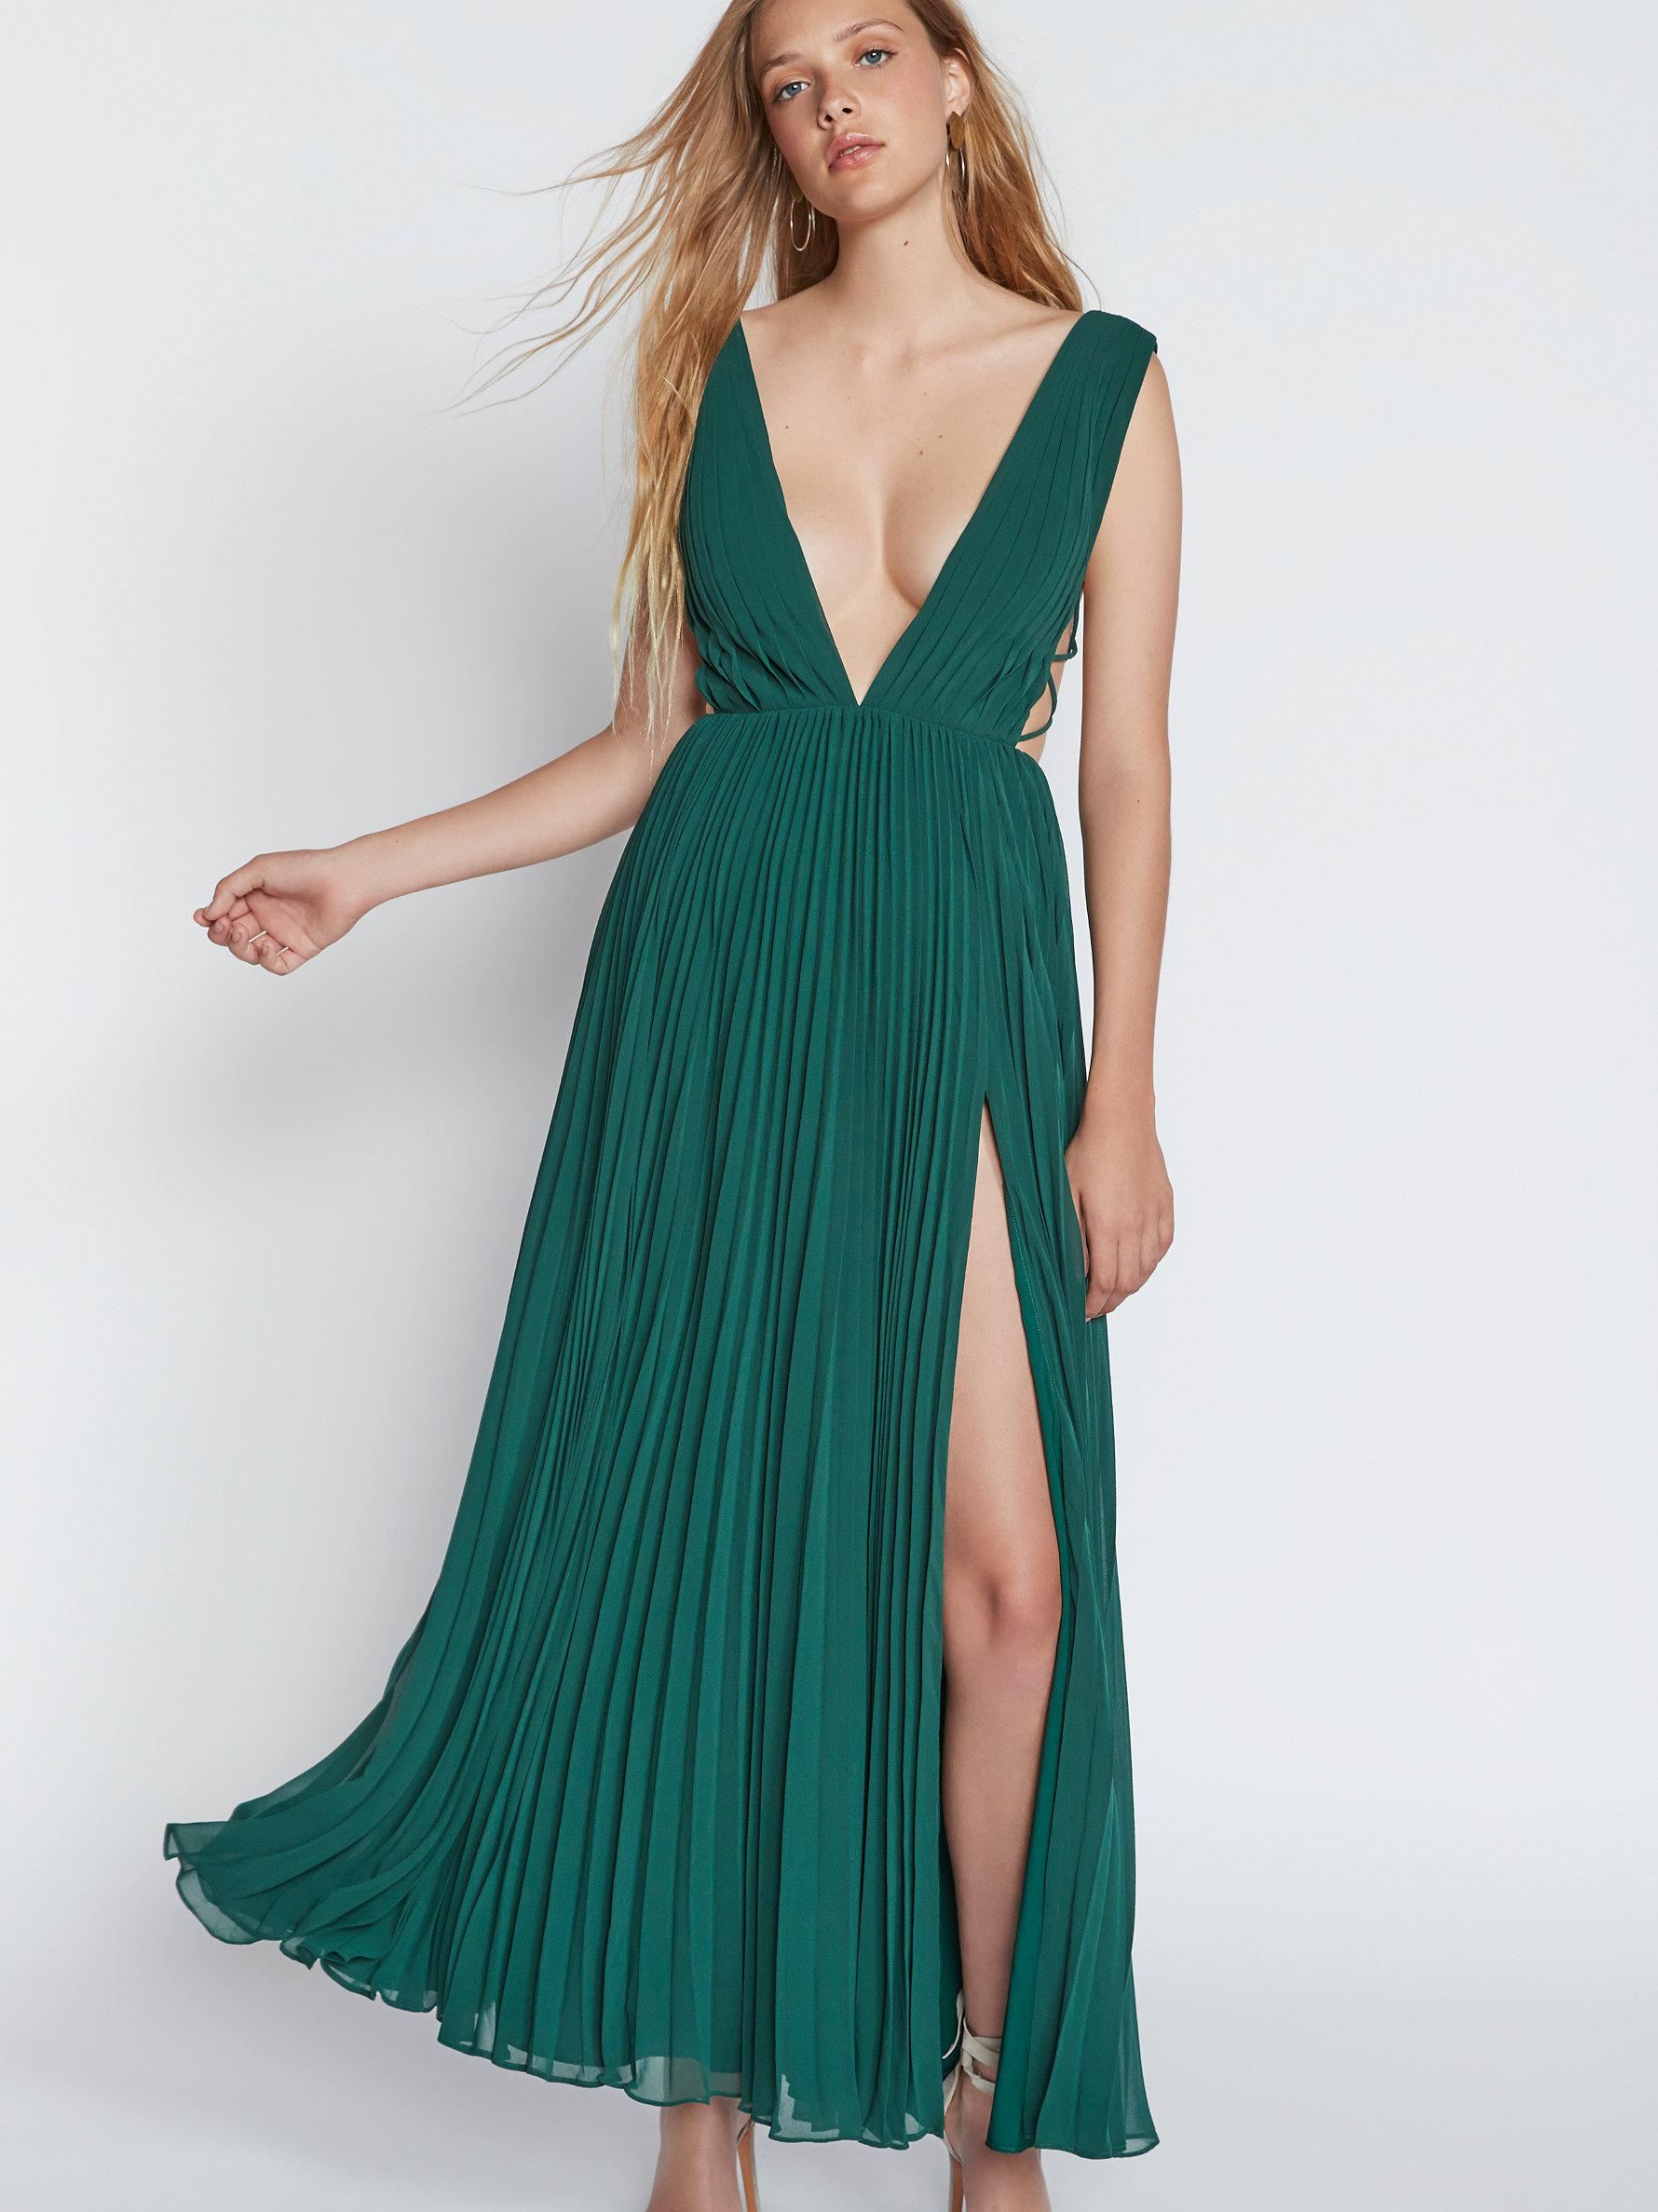 Famous Floaty Maxi Dress For Wedding Image Collection - All Wedding ...